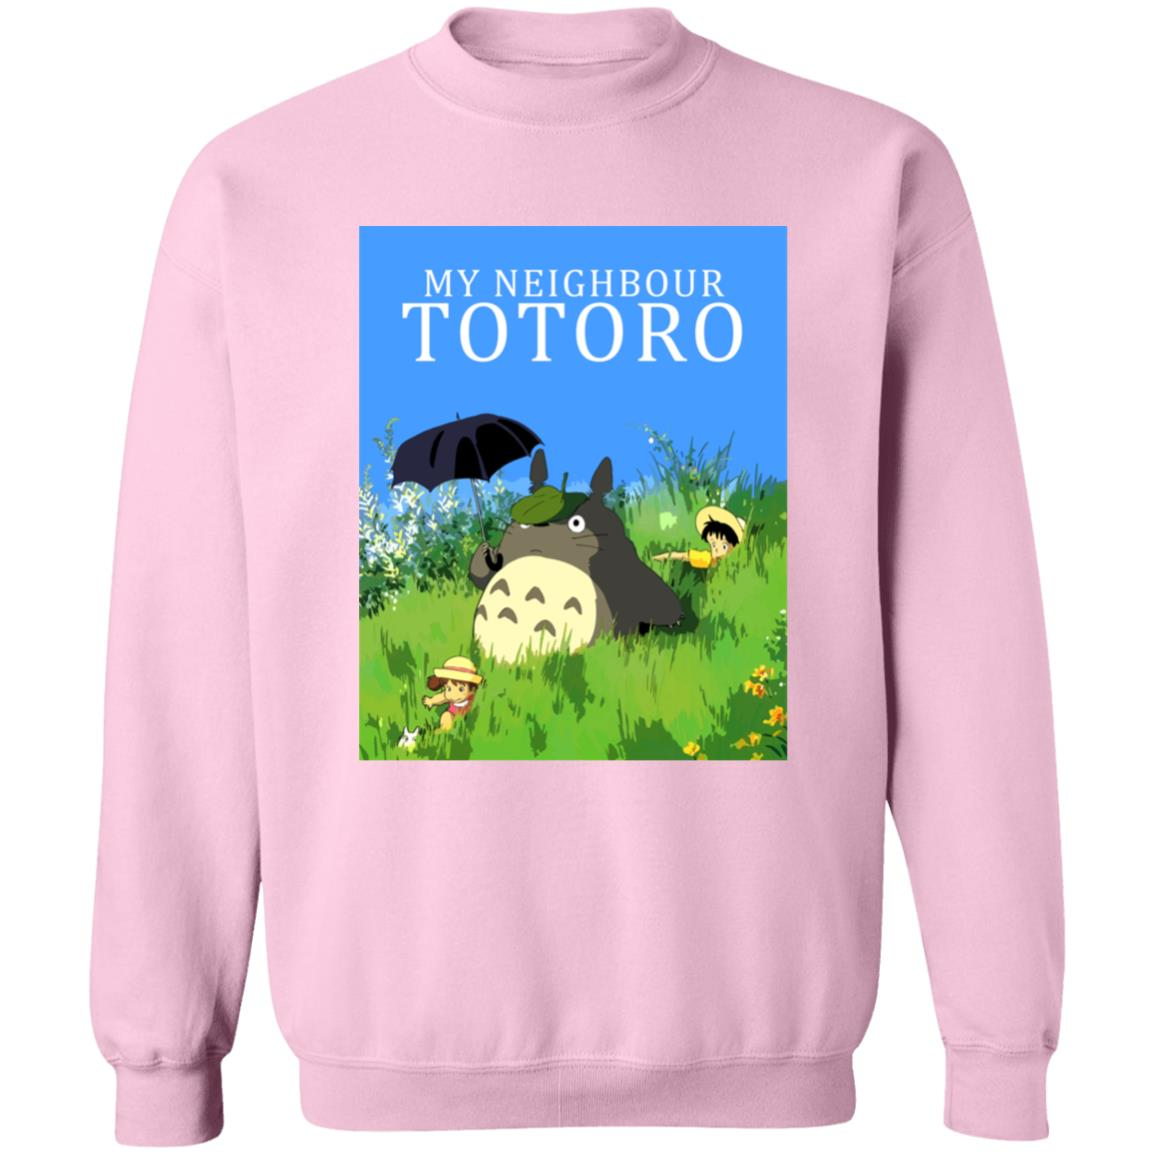 My Neighbor Totoro Sweatshirt Unisex